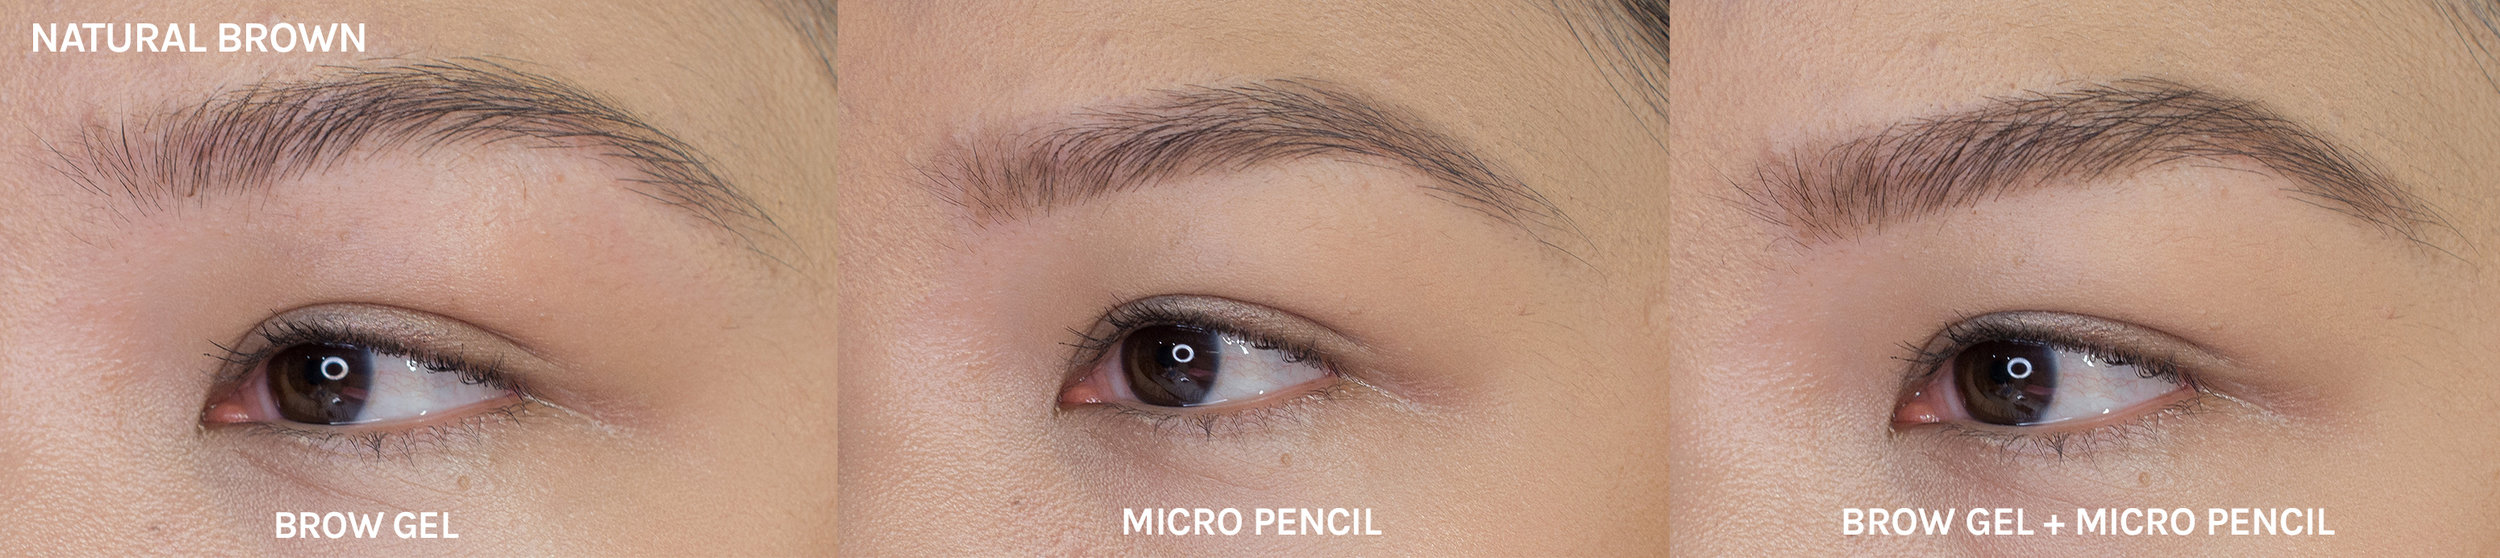 NATURAL-BROWN_vice-cosmetics_gandoll-micro-brow_volumizing-browcara_review-philippines_2019_19.JPG